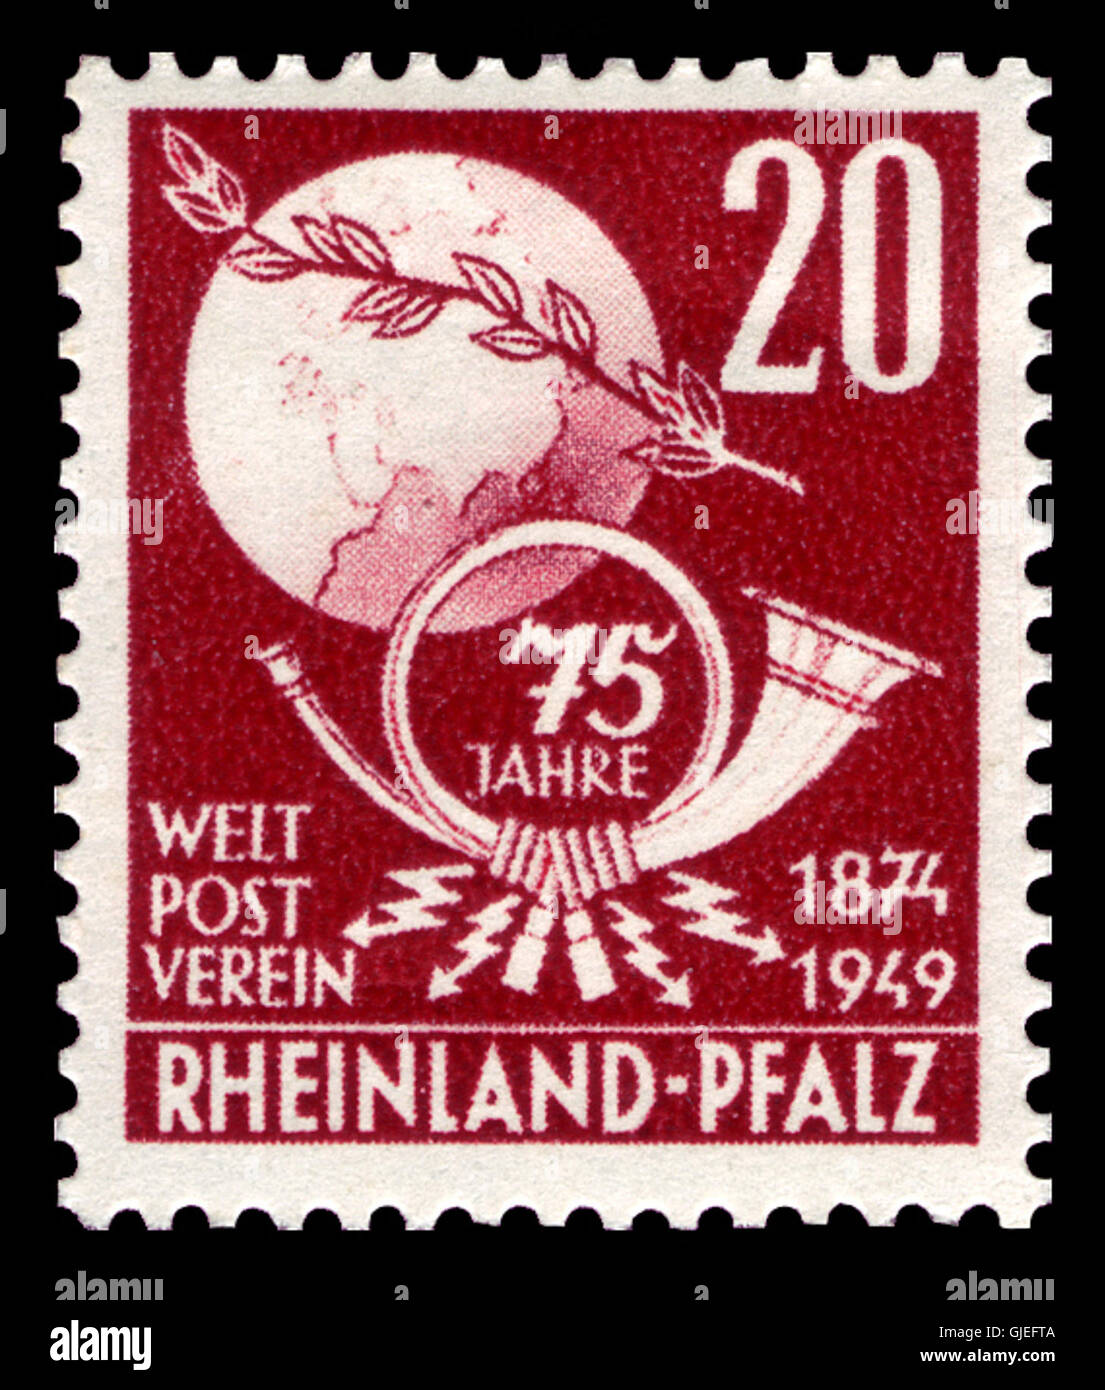 Fr. Zone Rheinland-Pfalz 1949 51 Weltpostverein Stock Photo